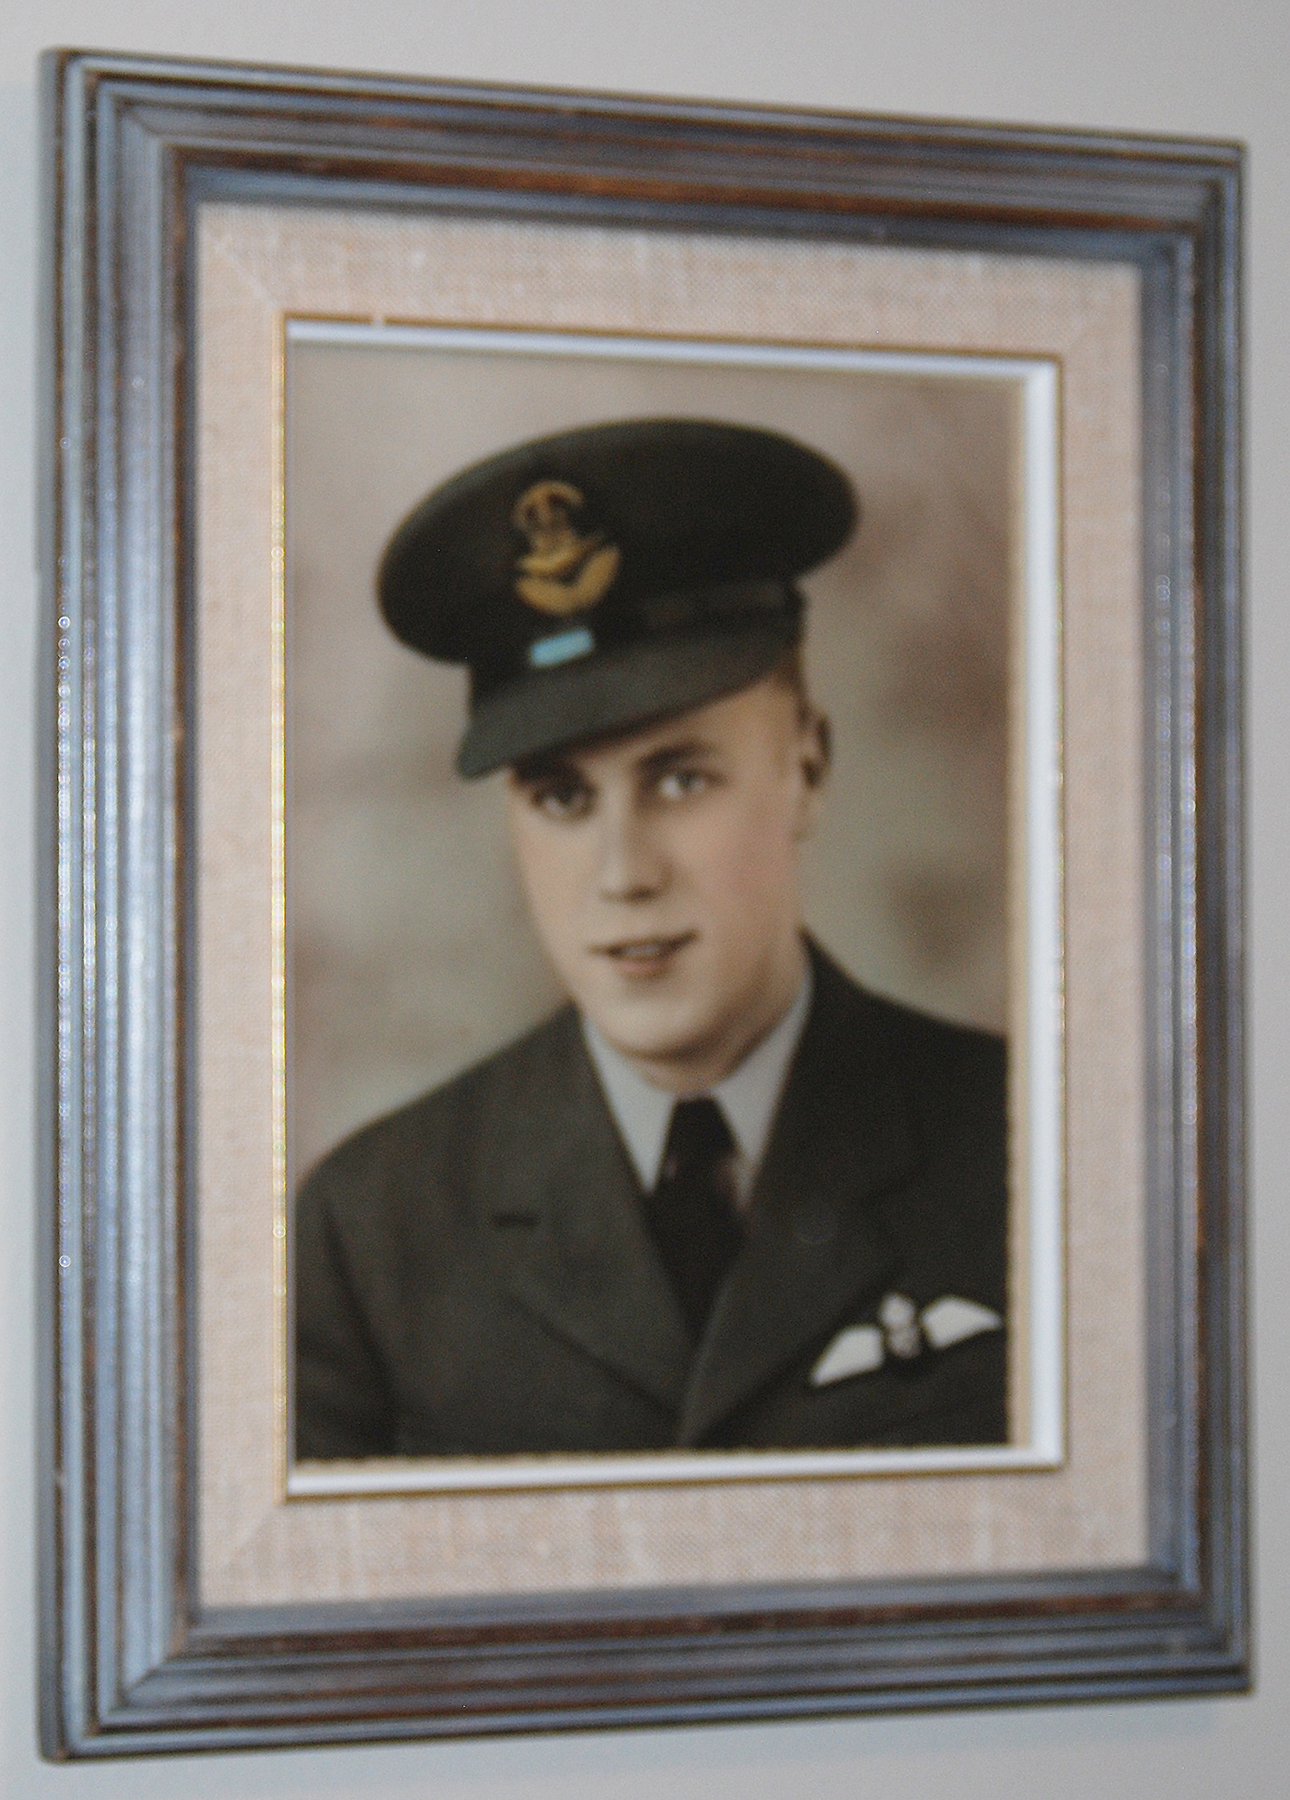 Flight Sergeant John Newell wears his wings with pride in a framed, undated image hanging in his home in in Ottawa, Ontario. PHOTO: Alexandra Baillie-David